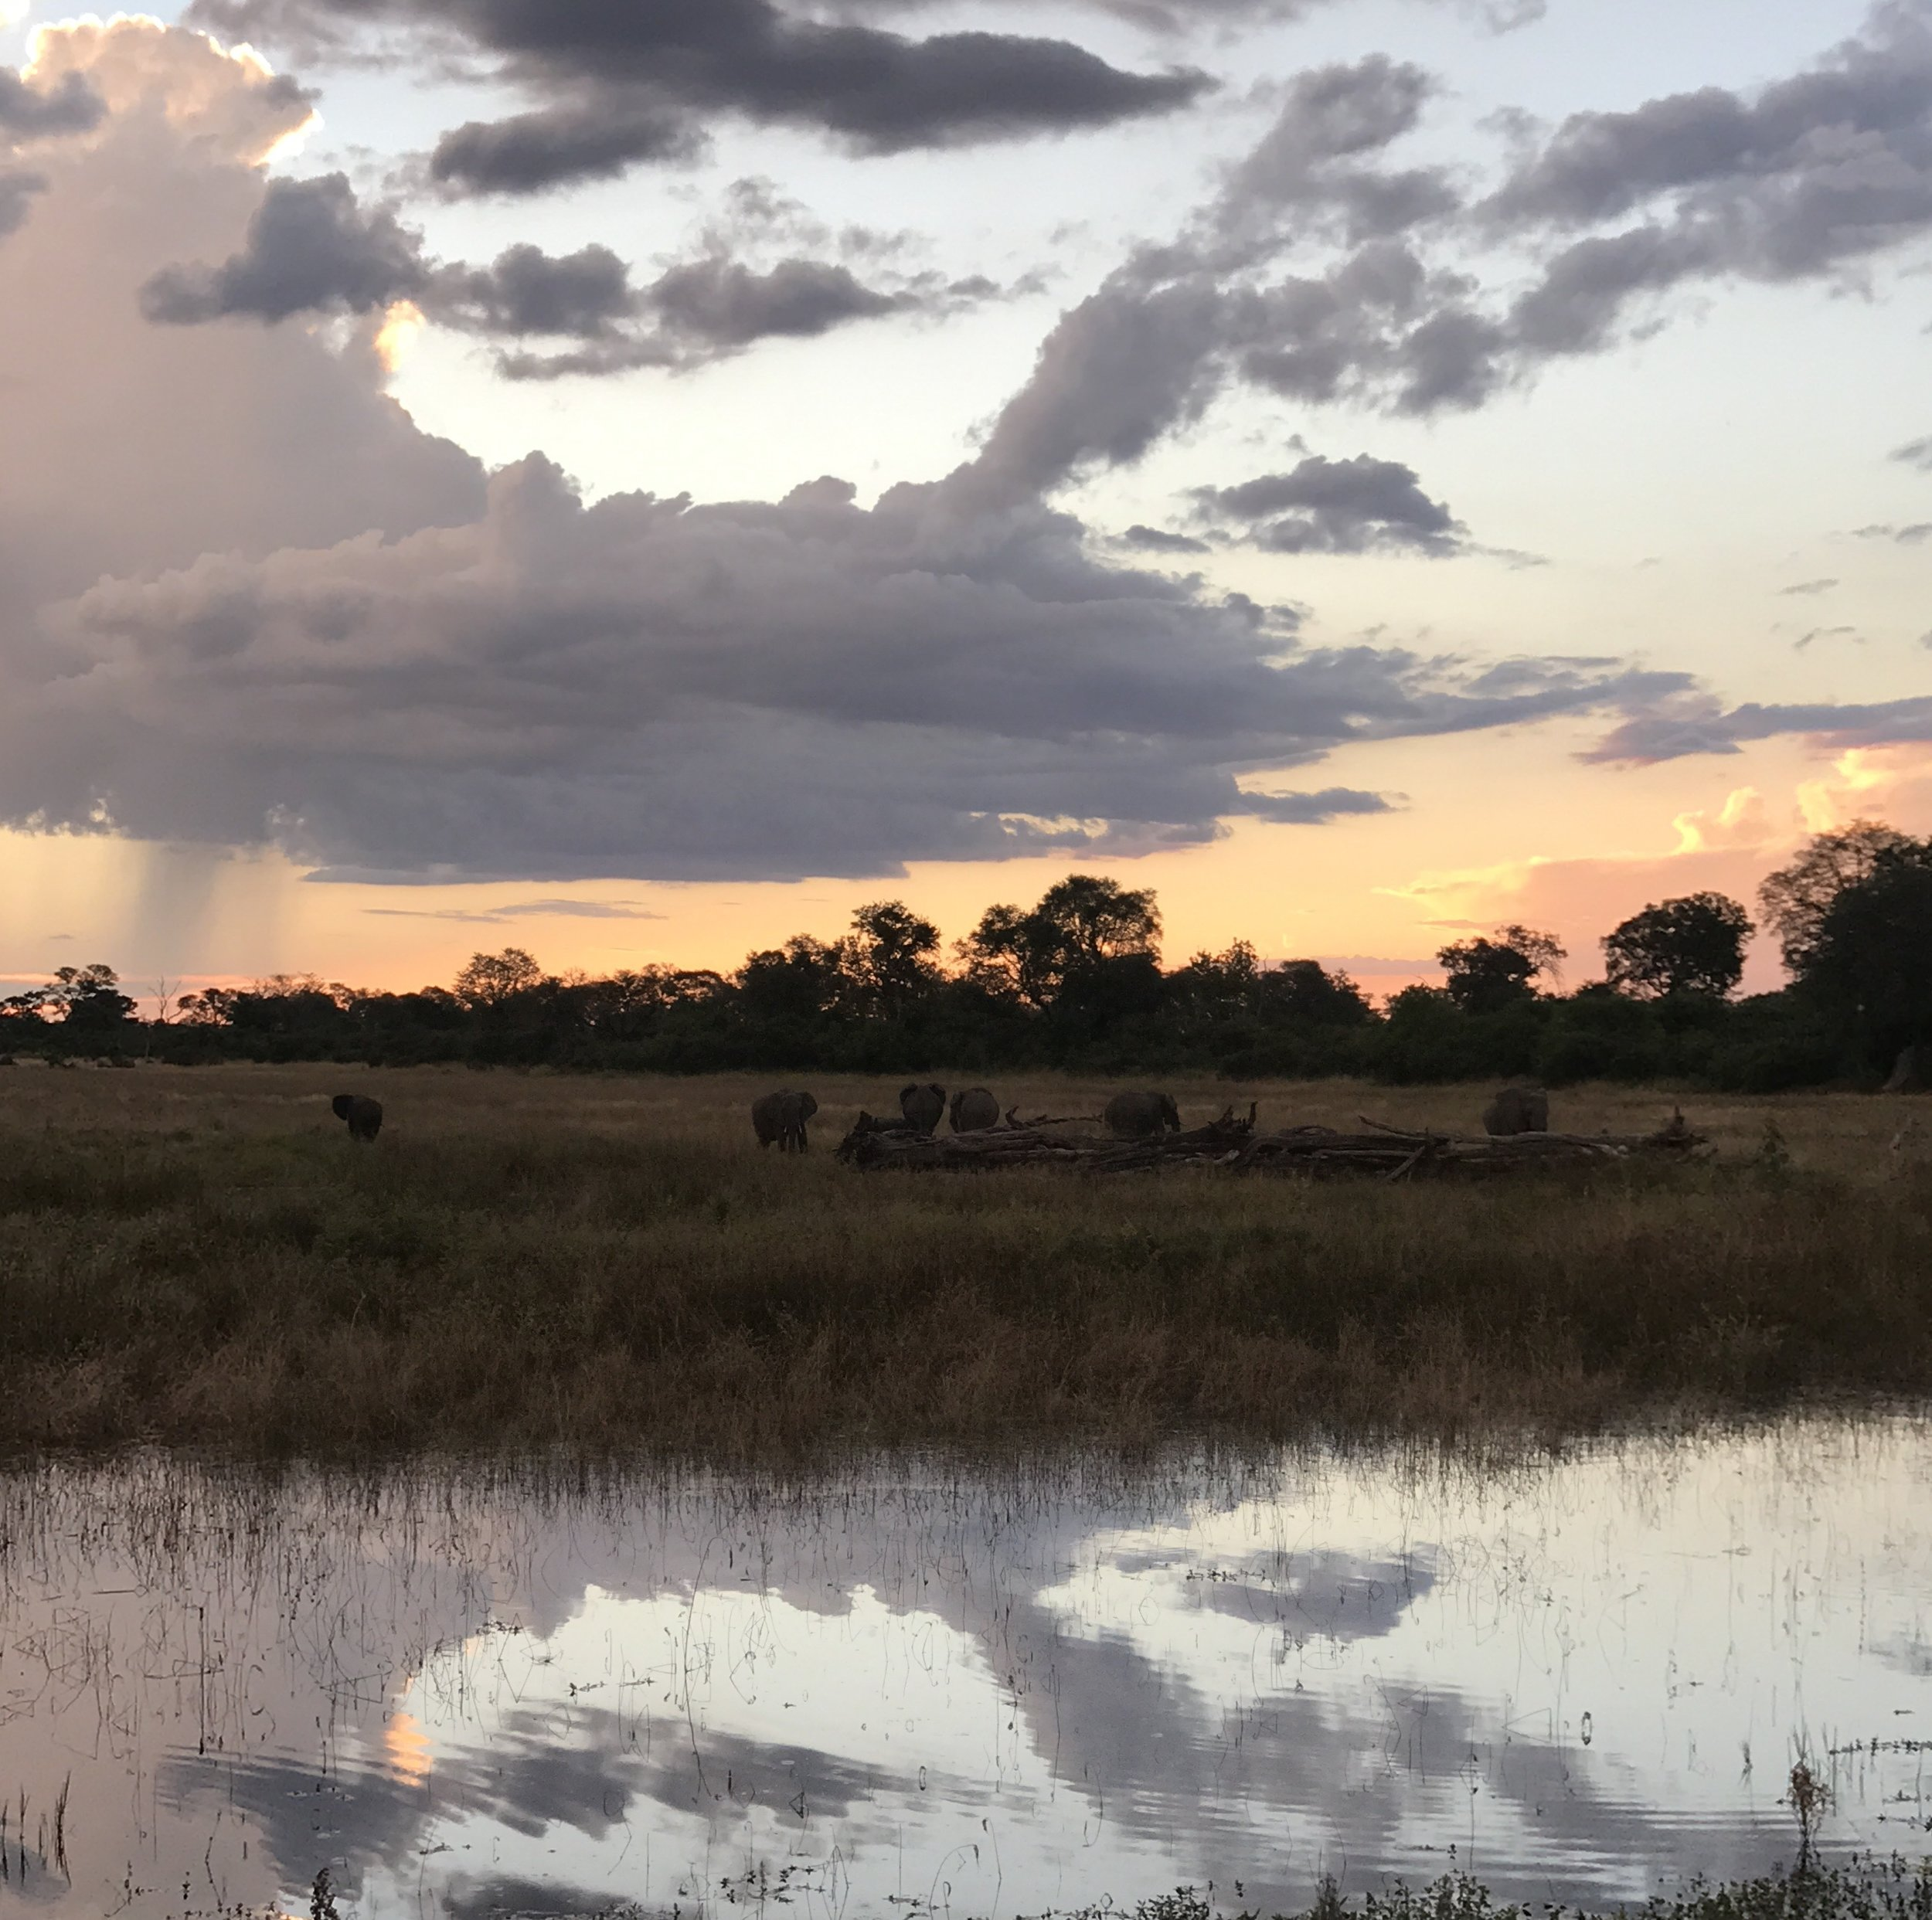 - When we arrived at Zavuti, the welcoming committee was out in full force, we enjoyed a sundowner on the deck surrounded by a herd of elephants!Monday night is Boma night in the camp. The local word boma means 'gathering' but originates from the the acronym for British Officers Mess Area, which the local tribes adopted as their own many years ago. For us, it meant a group dinner around the fire pit, lots of incredible local cuisine, traditional song & dance and more drink than you know what to do with, those Batswana's sure know how to party!